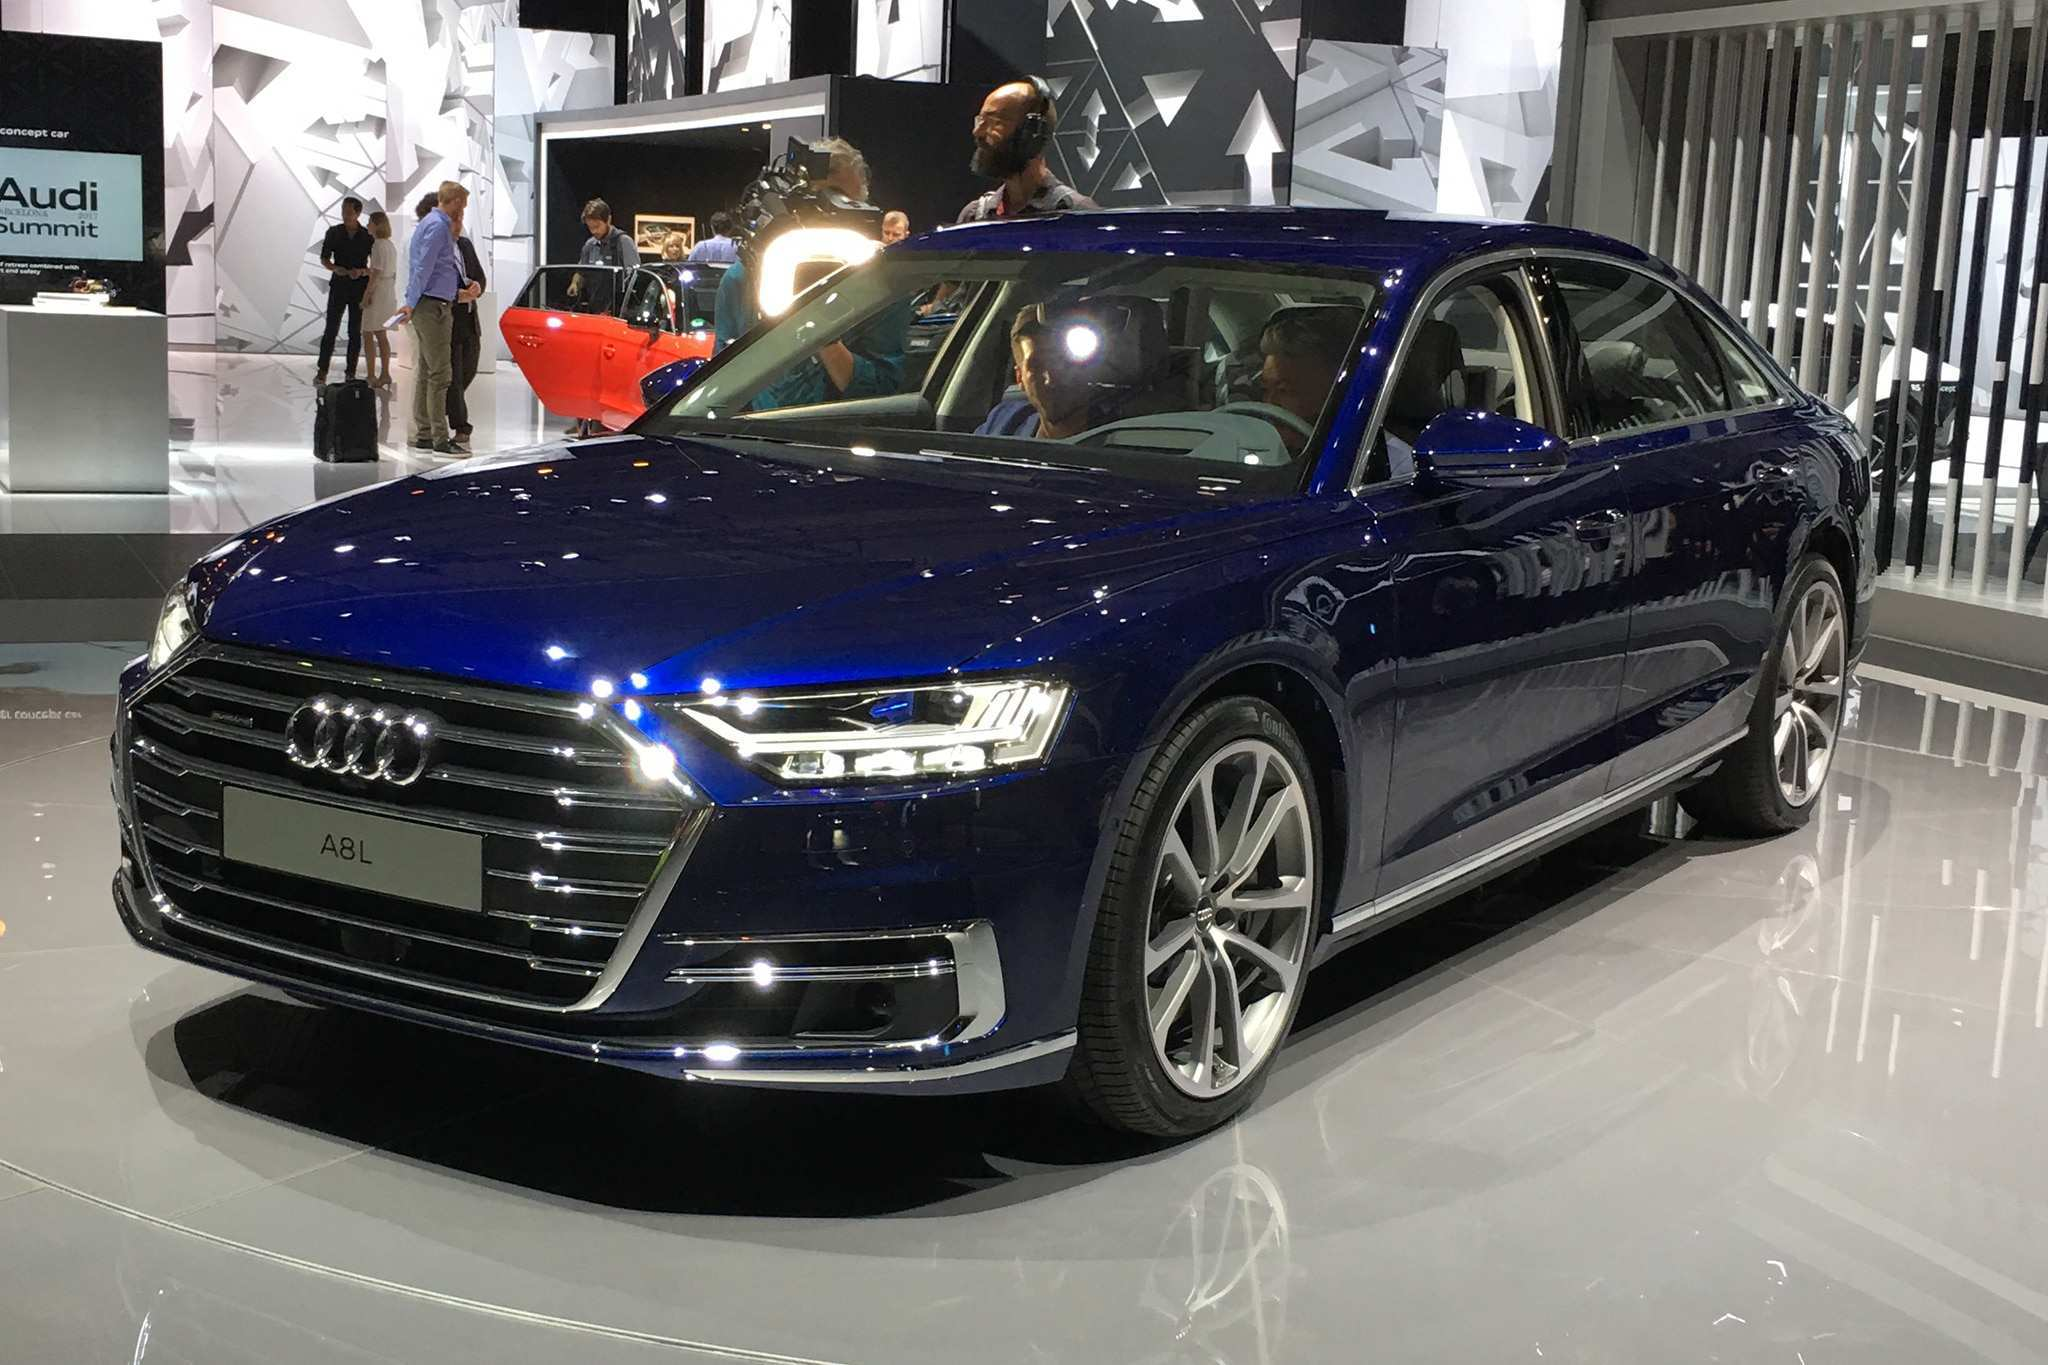 91 Great 2019 Audi A8 Photos Photos with 2019 Audi A8 Photos